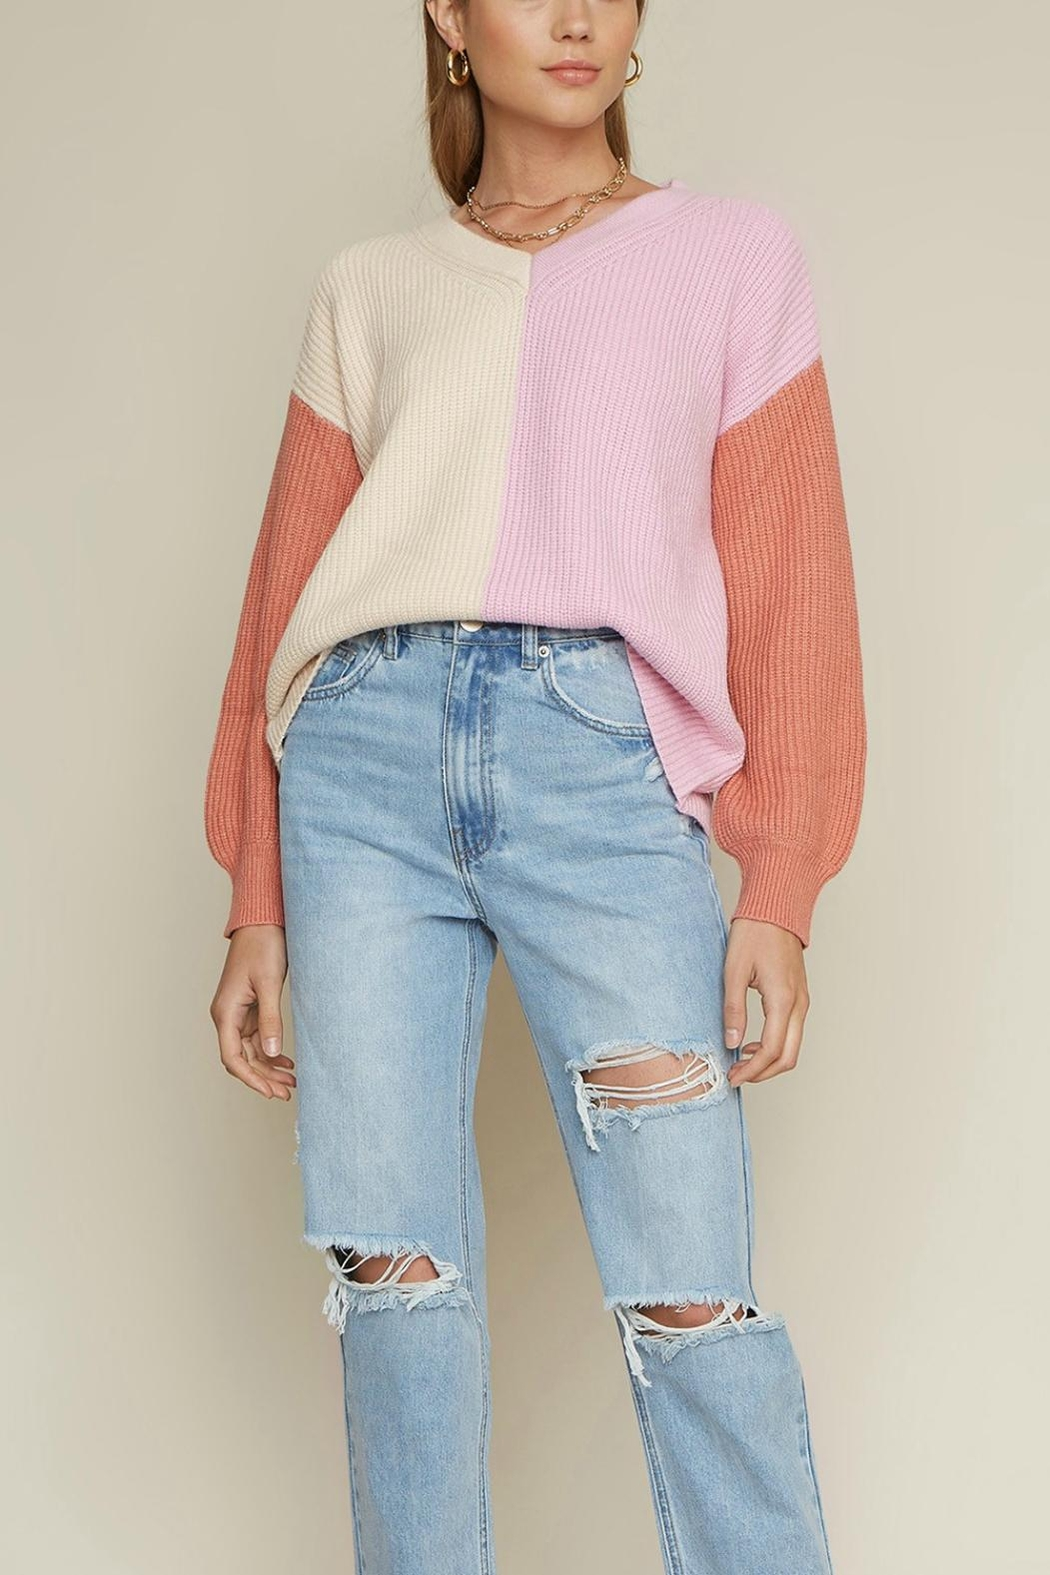 Pretty Little Things Colorblock Sweater - Main Image